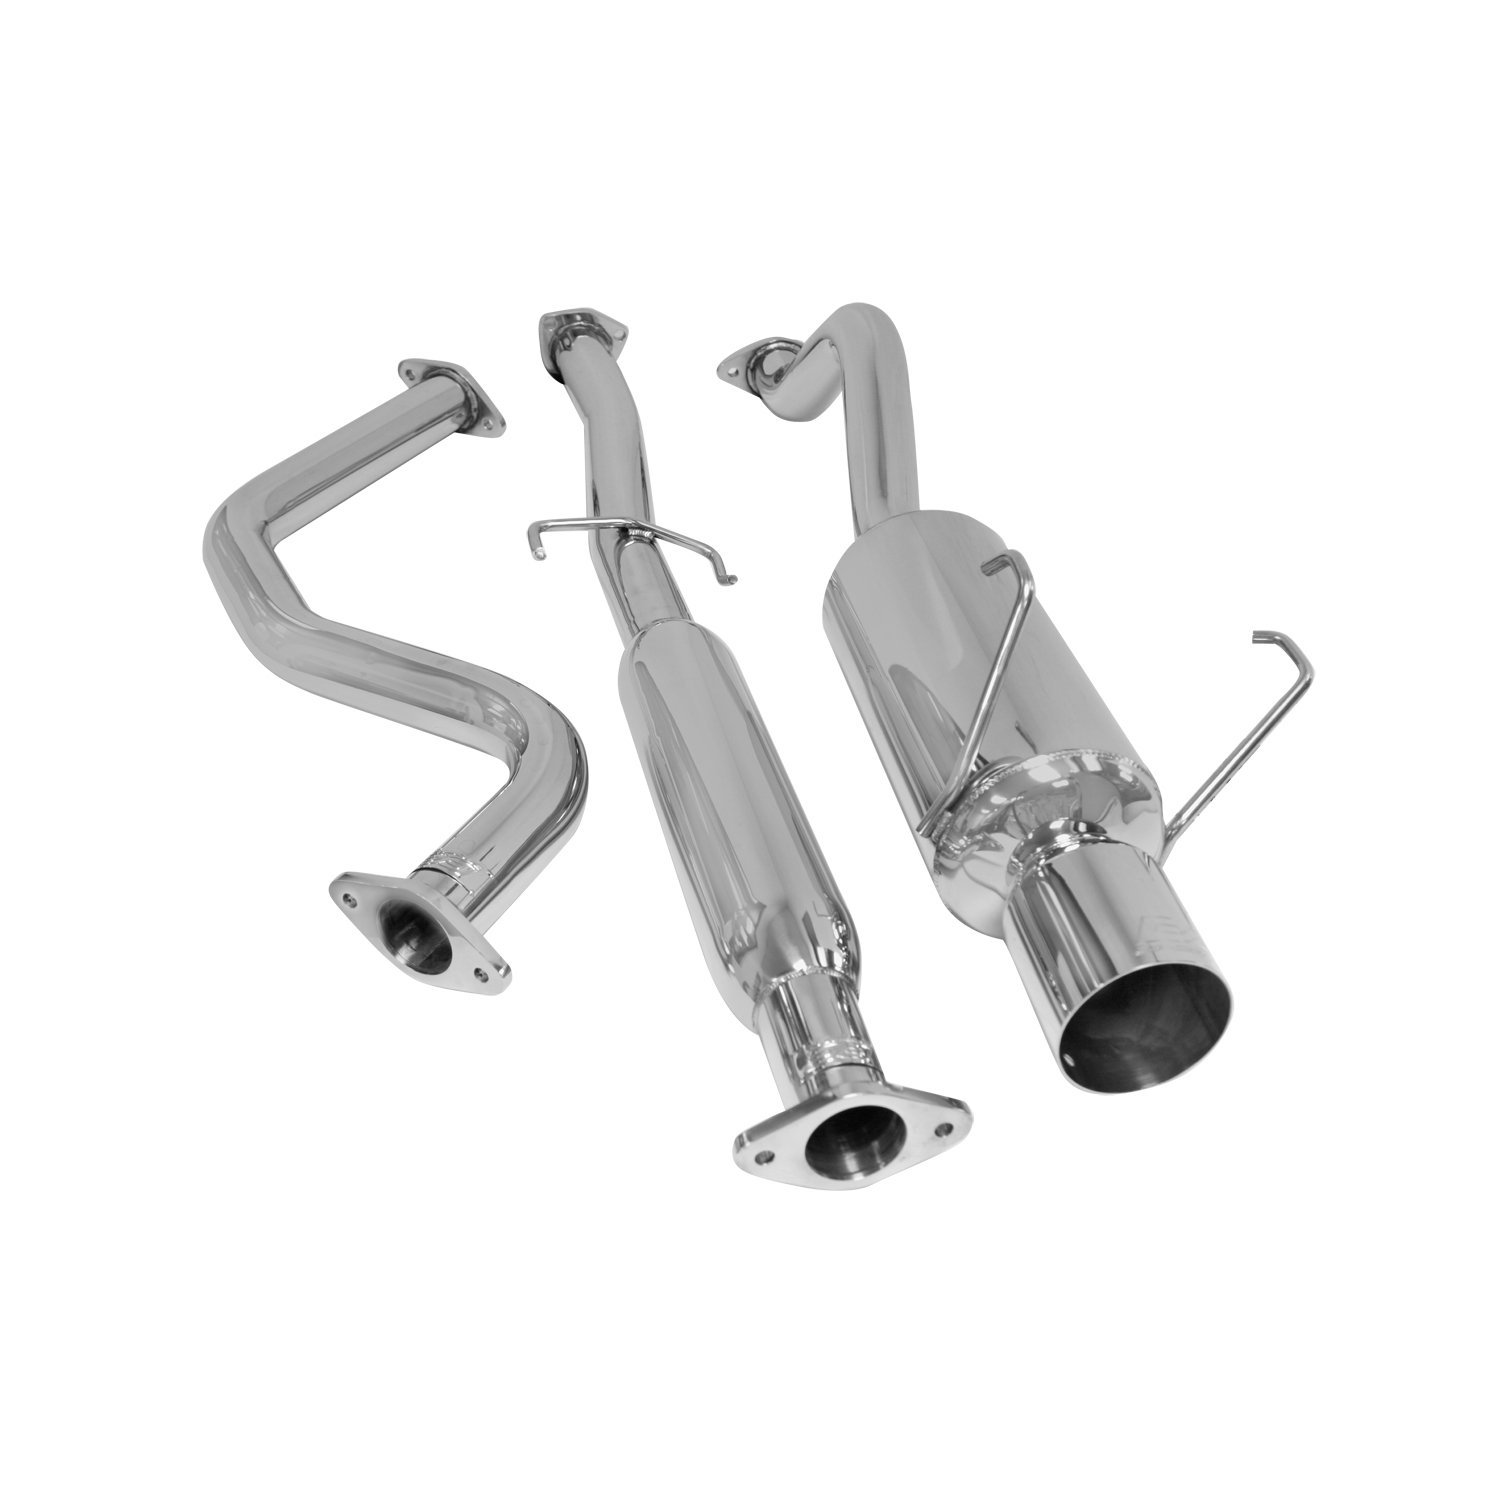 DC Sports SCS6301 Saab 92X-Aero Polished Stainless Steel Single Canister Cat-Back Exhaust System